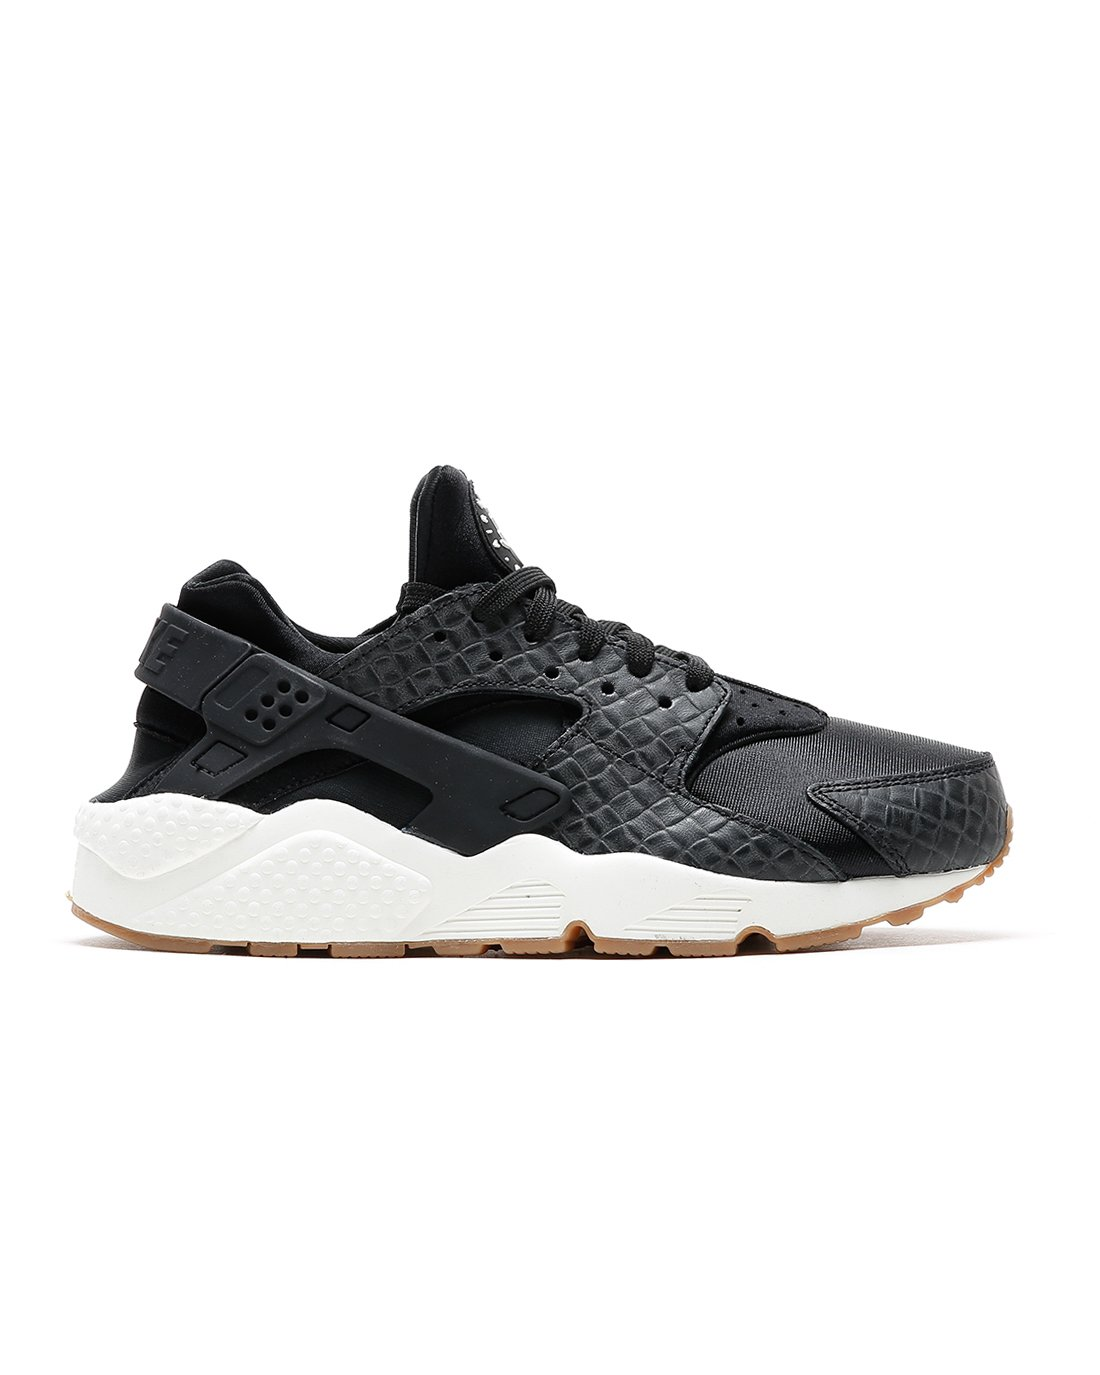 683818-011 NIKE WOMEN AIR HUARACHE RUN PRM PREMIUM BLACK-SAIL-GUM BROWN SZ 6